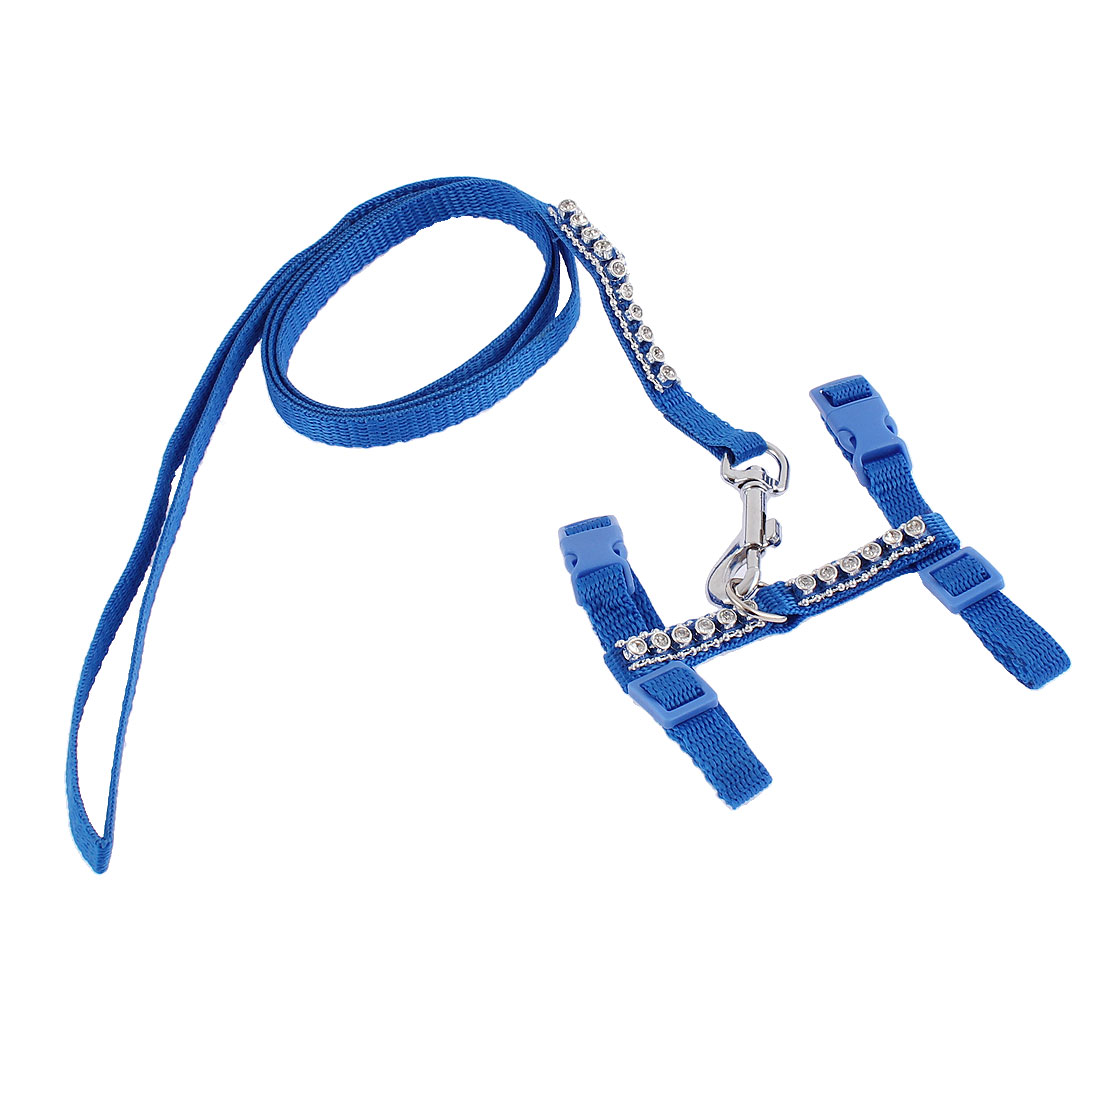 Pet Puppy Cat Adjustable Nylon Walking Training Harness Leash Traction Rope Blue